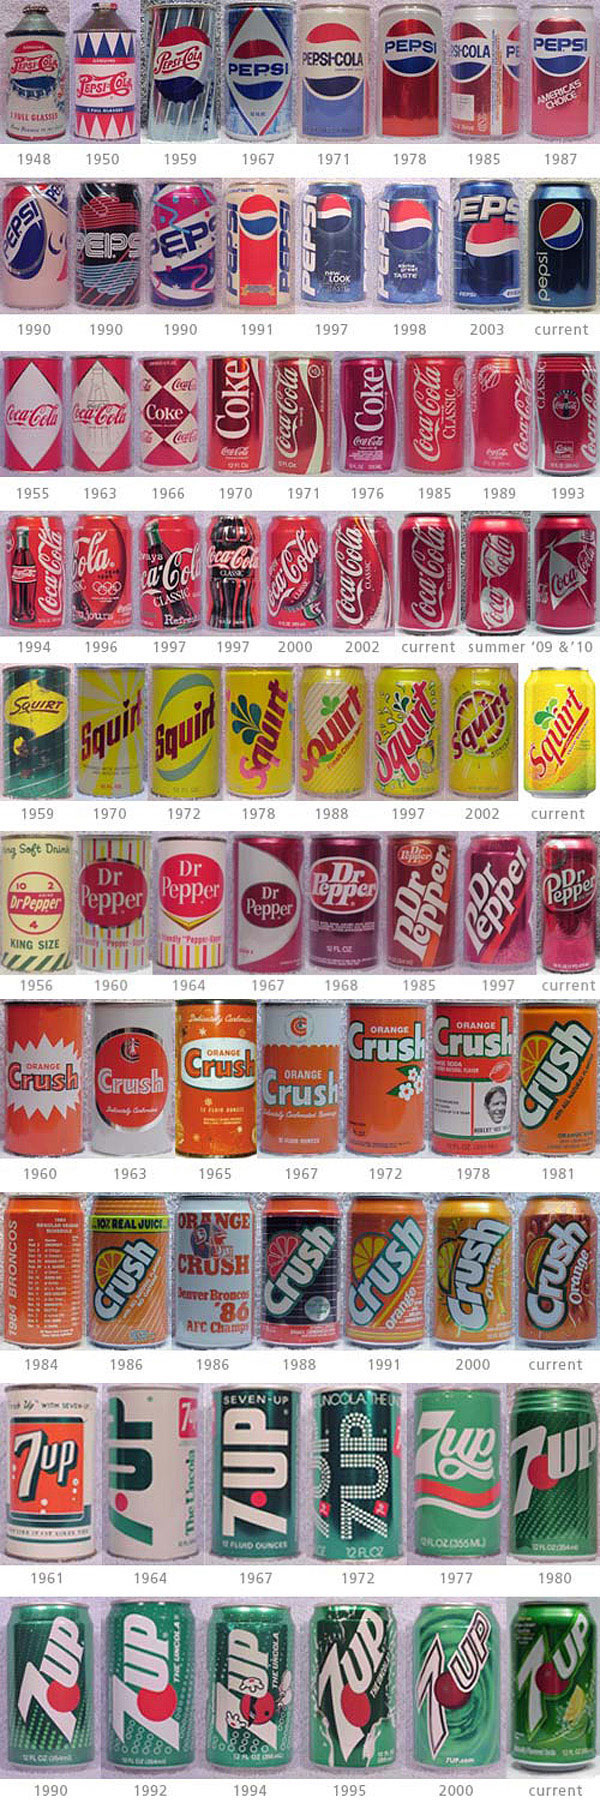 Design evolution of soft drink cans